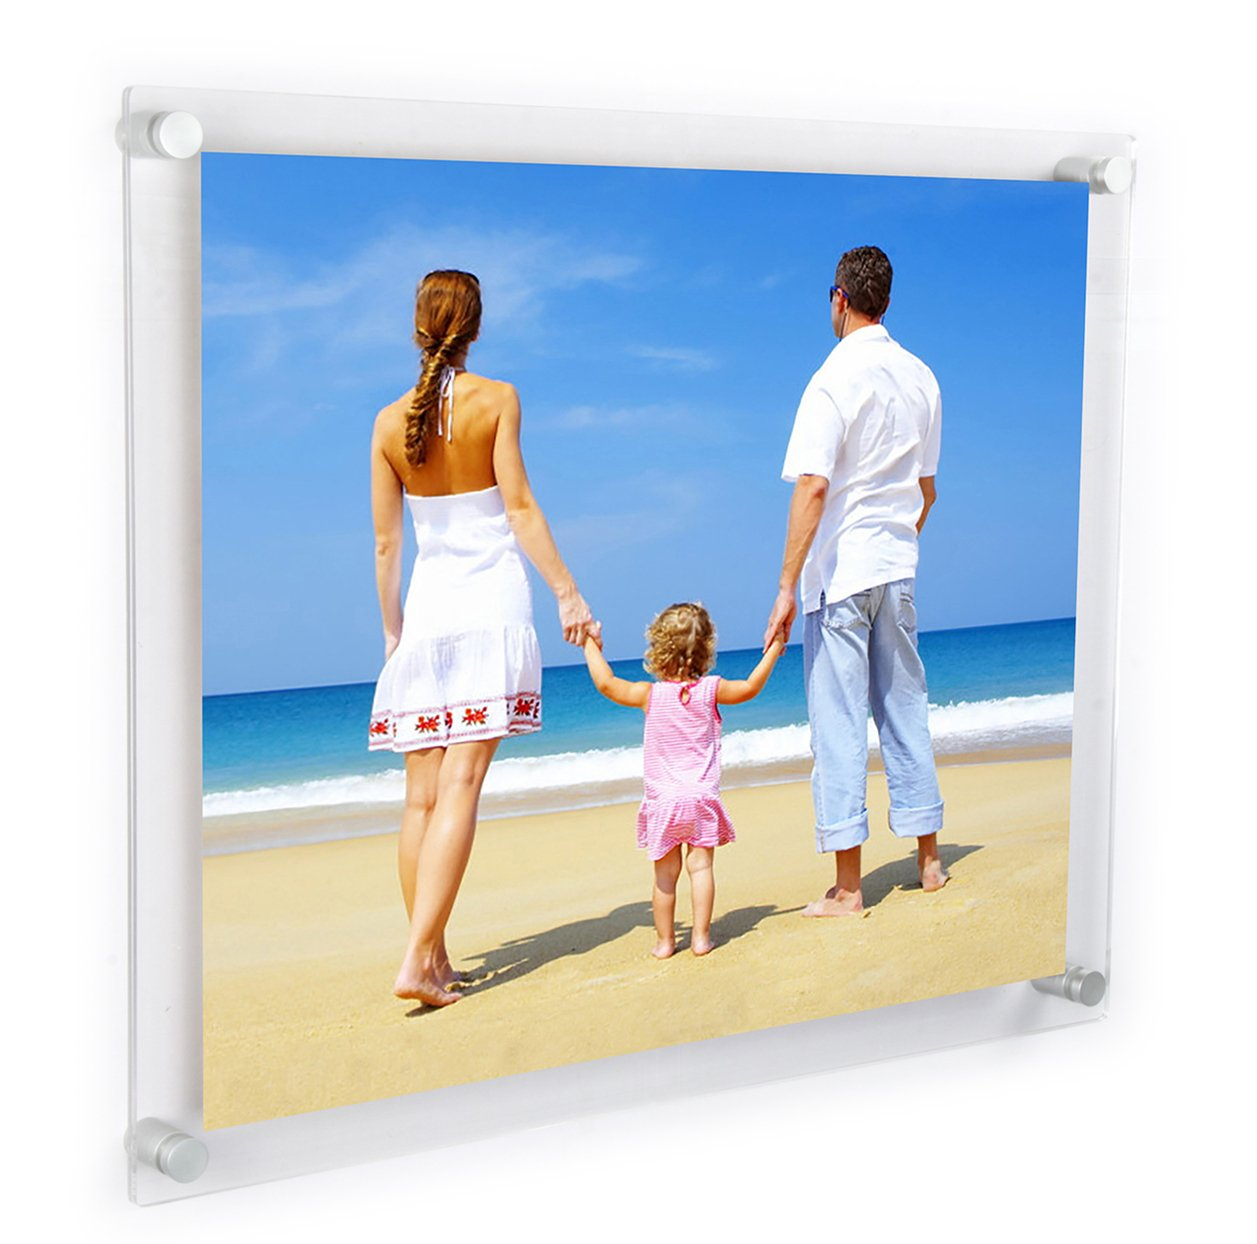 NIUBEE Clear Acrylic Wall Mount Floating Frameless Picture Frame Up to 16x20 Photo for Poster Photography Frames-Double Panel(Full Frame is 18.5x22.5 inch)